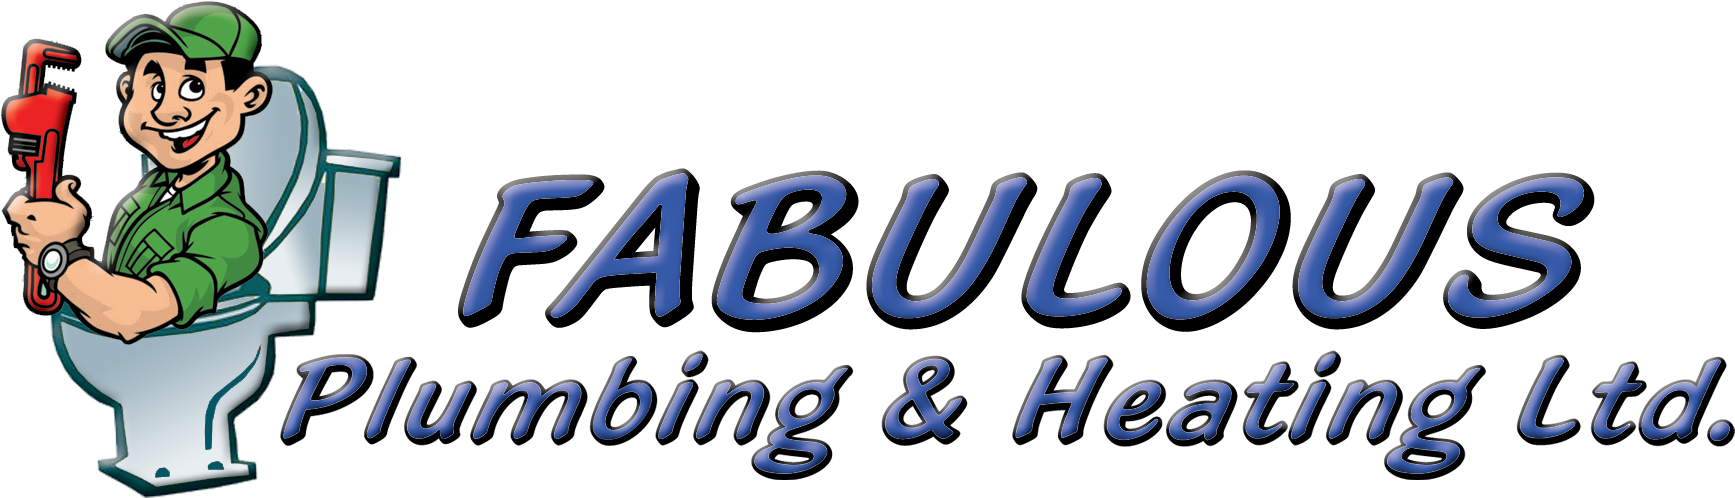 Fabulous Plumbing & Heating LTD